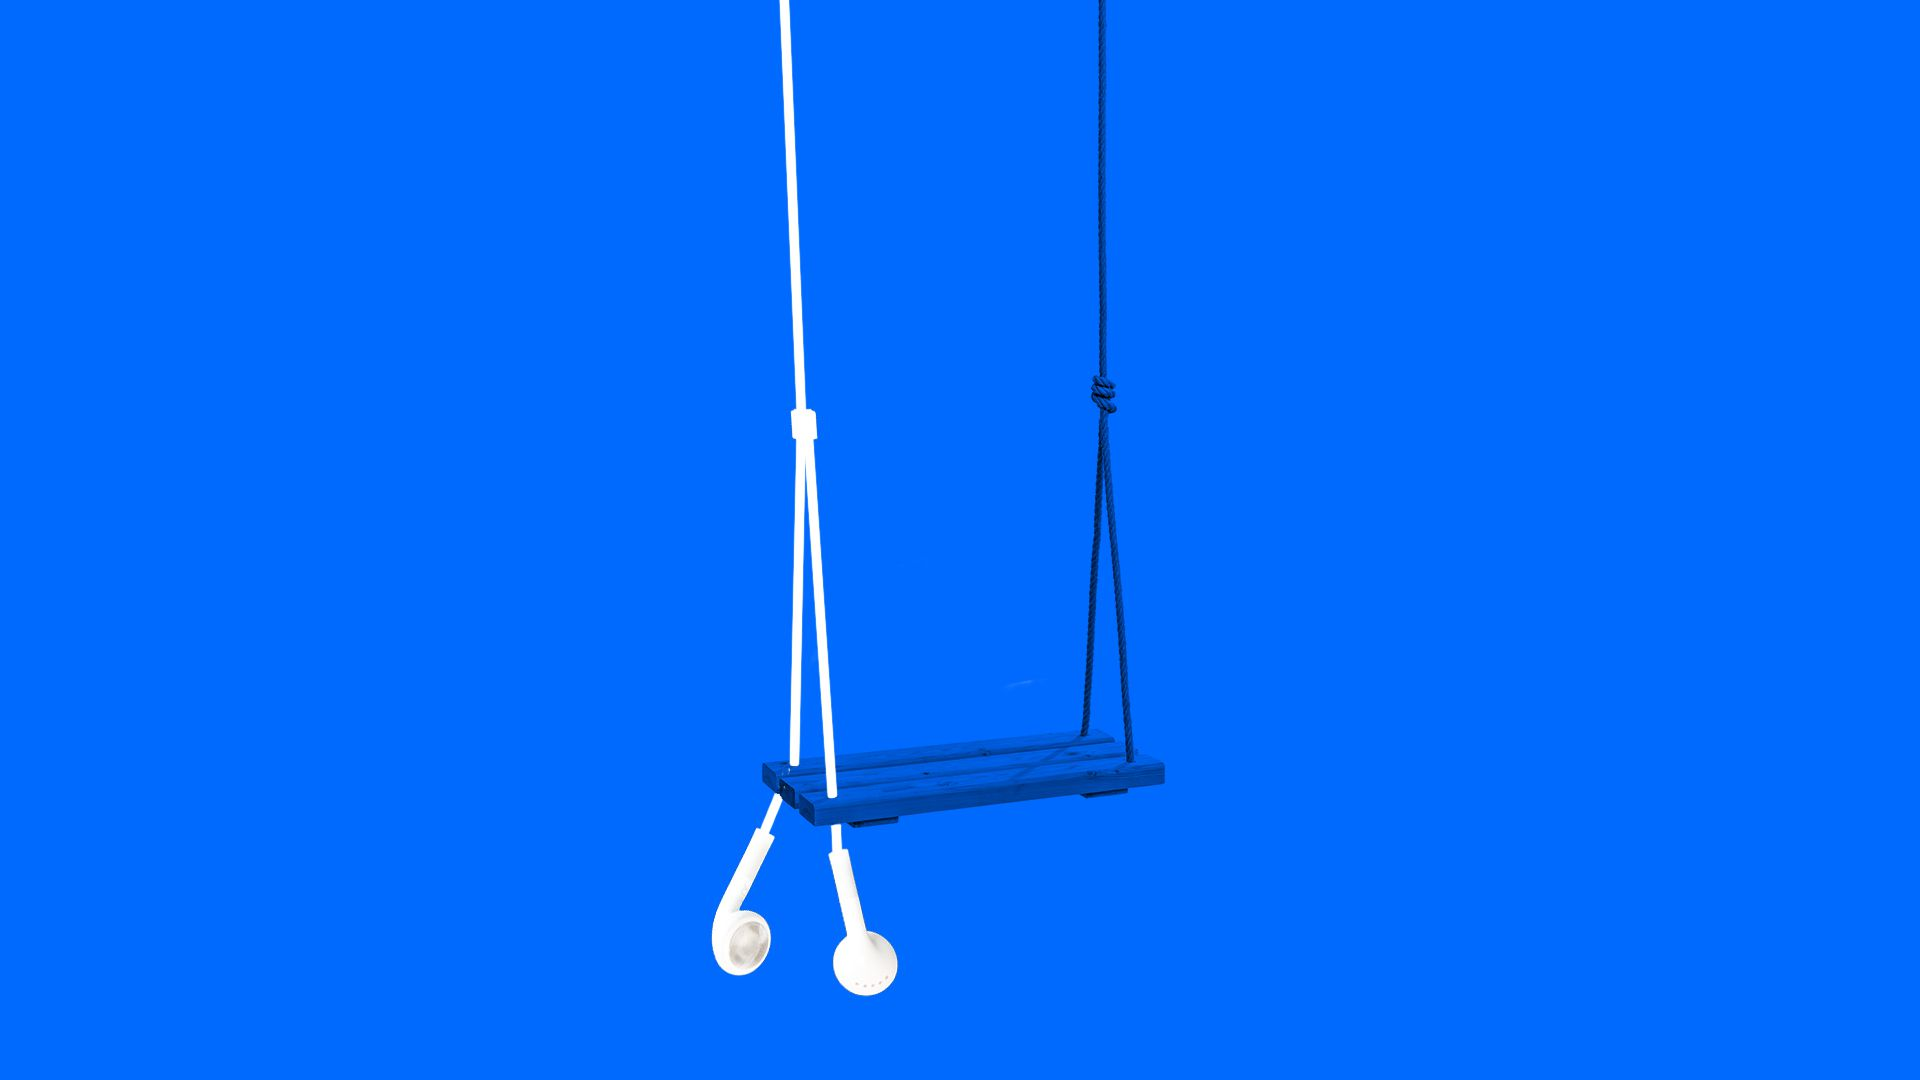 Illustration of a child's swing dangling from Apple earbuds